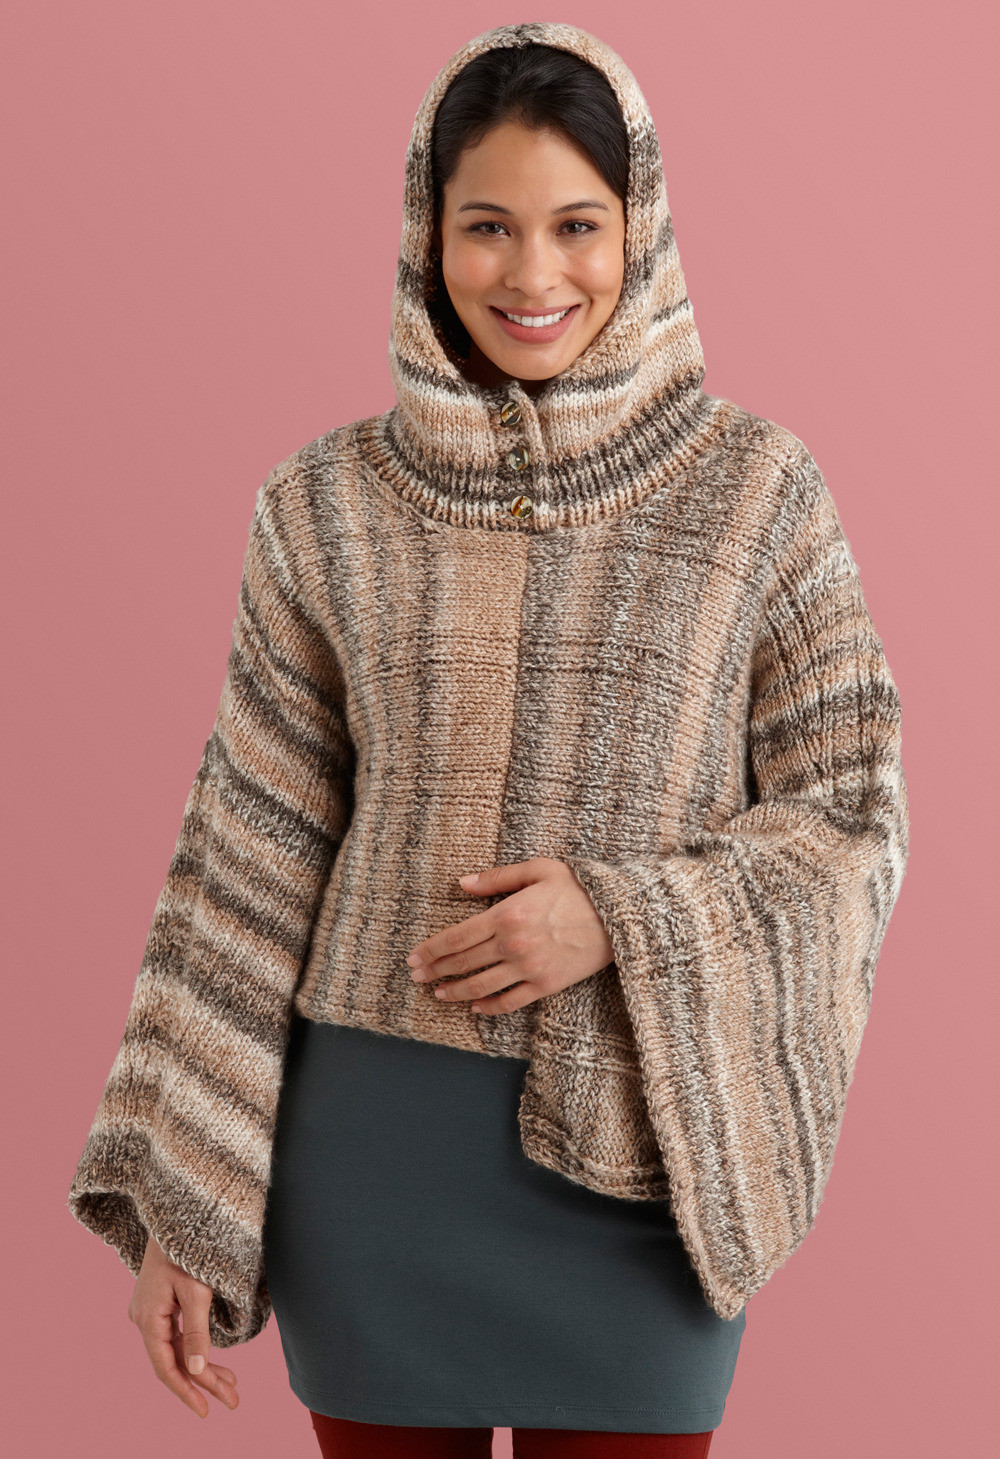 Unique Hooded Poncho In Lion Brand Tweed Stripes L Hooded Cape Pattern Of Great 42 Pictures Hooded Cape Pattern